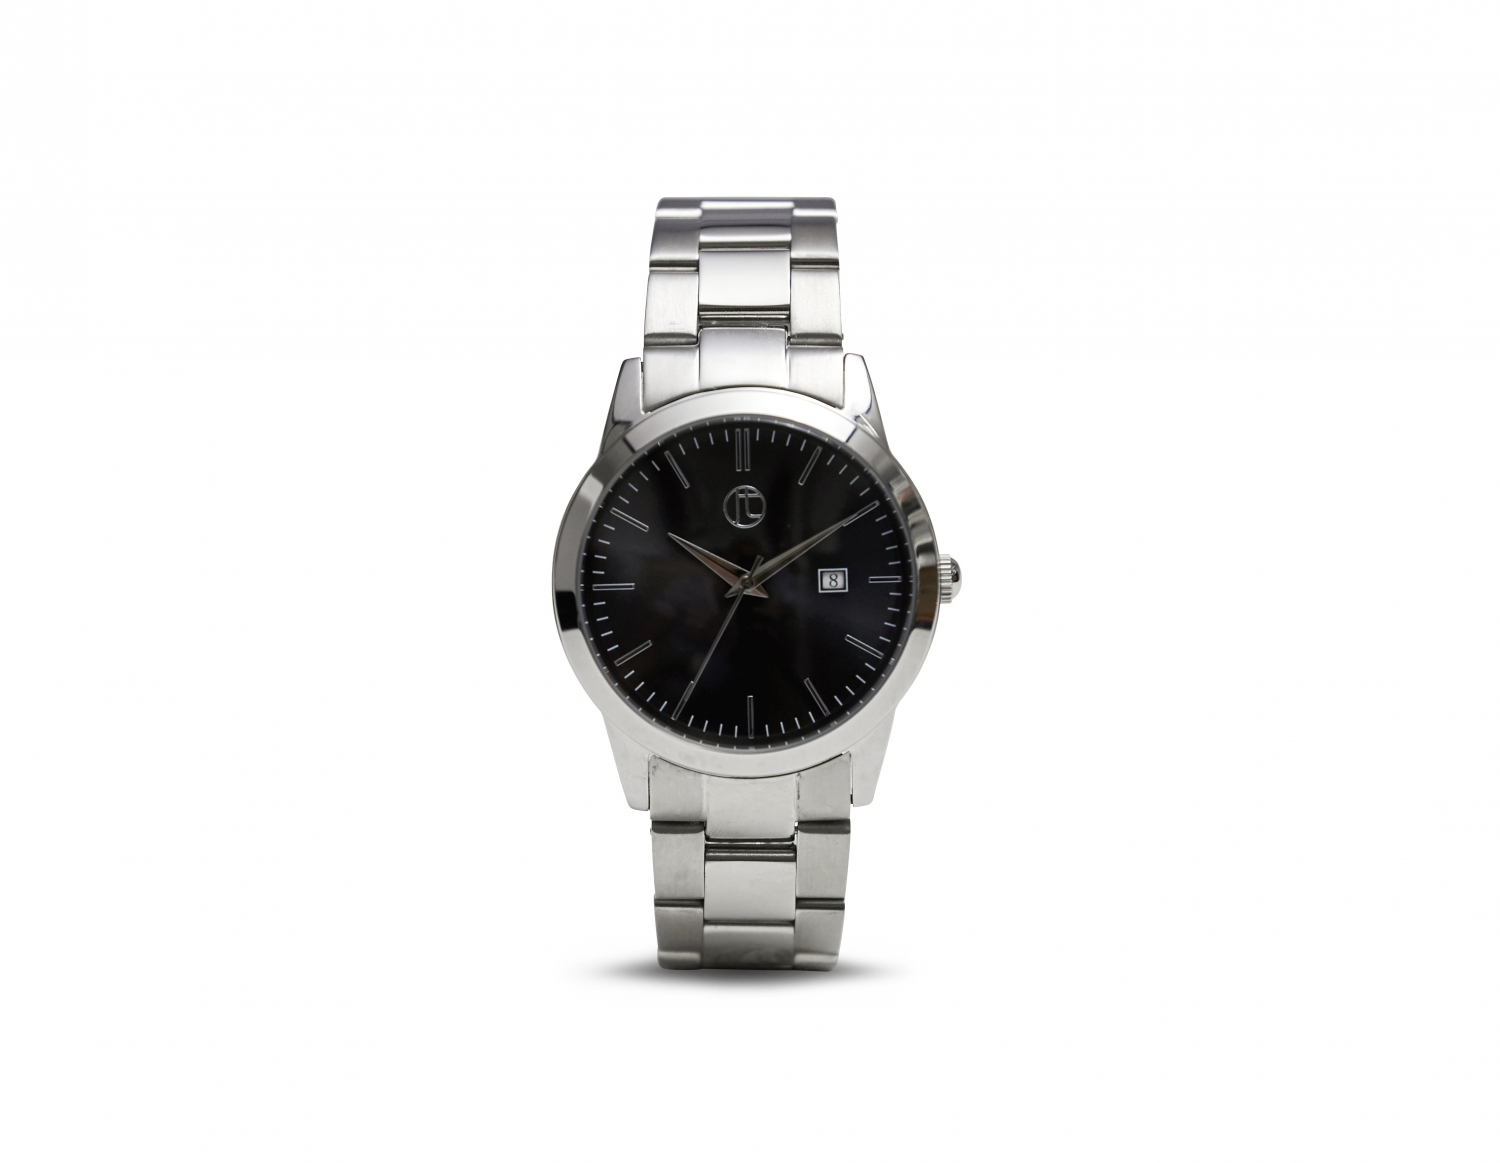 Image of Jeweltime ur - C2620SXD-A